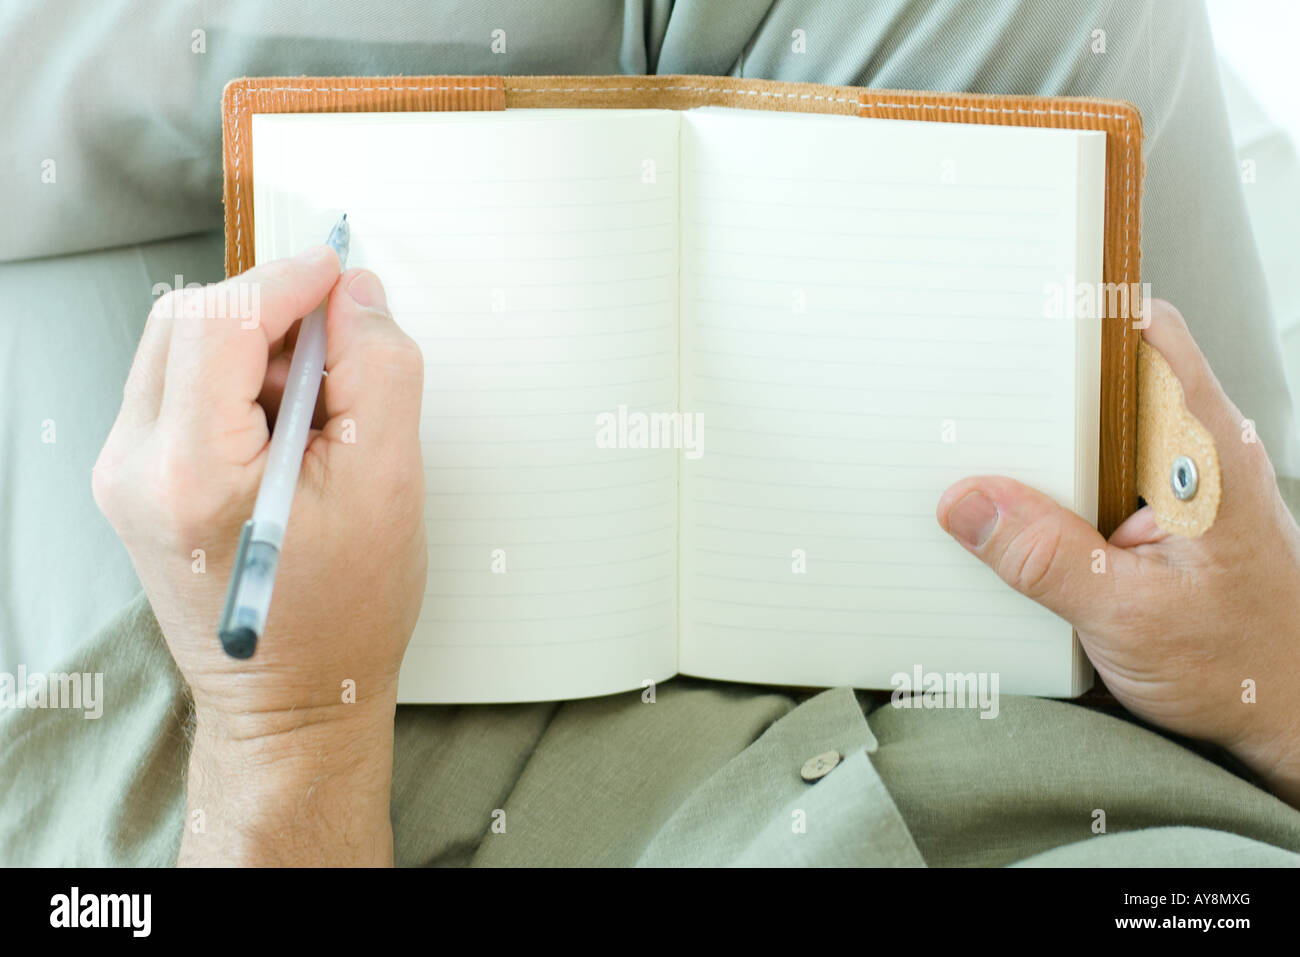 Man writing in diary, cropped view of hands - Stock Image